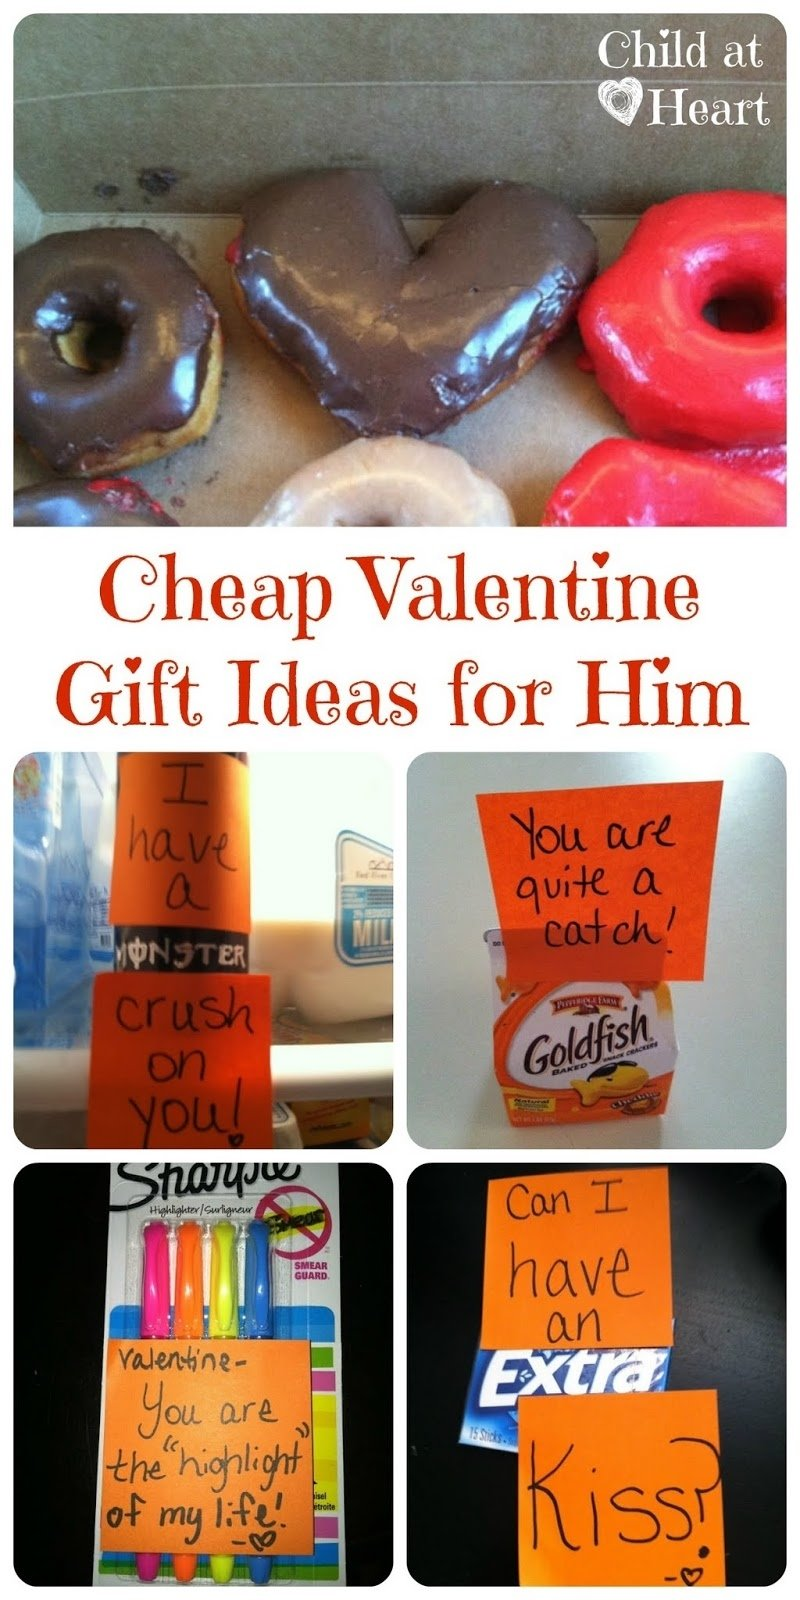 10 Lovely Birthday Ideas For Husband On A Budget cheap valentine gift ideas for him child at heart blog 1